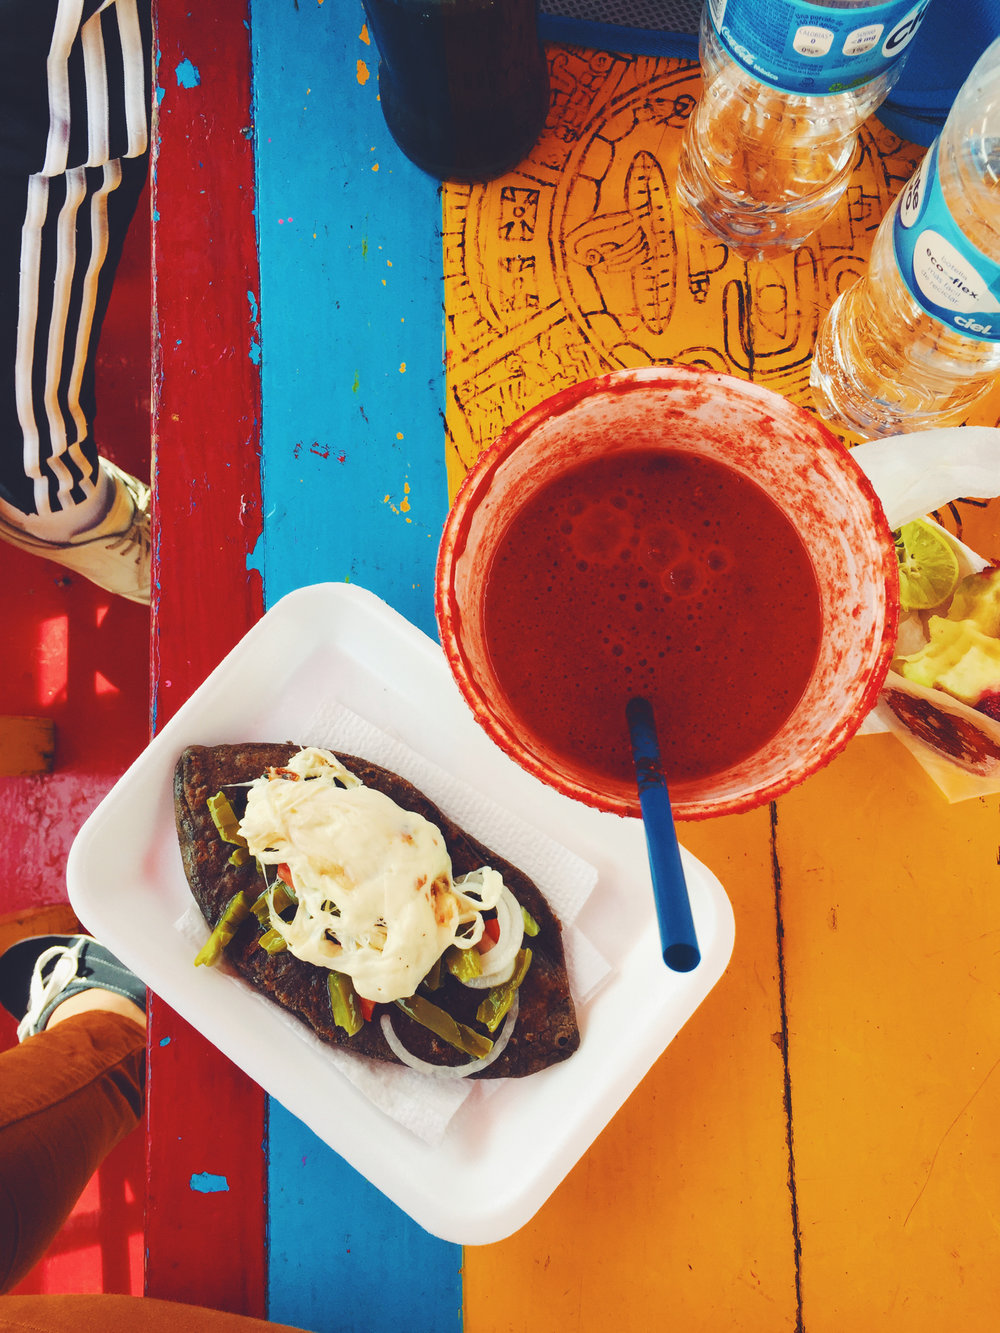 $1.50 Michelada & Tlacoyo (fried masa pocket filled with beans), cooked boatside in Xochimilco